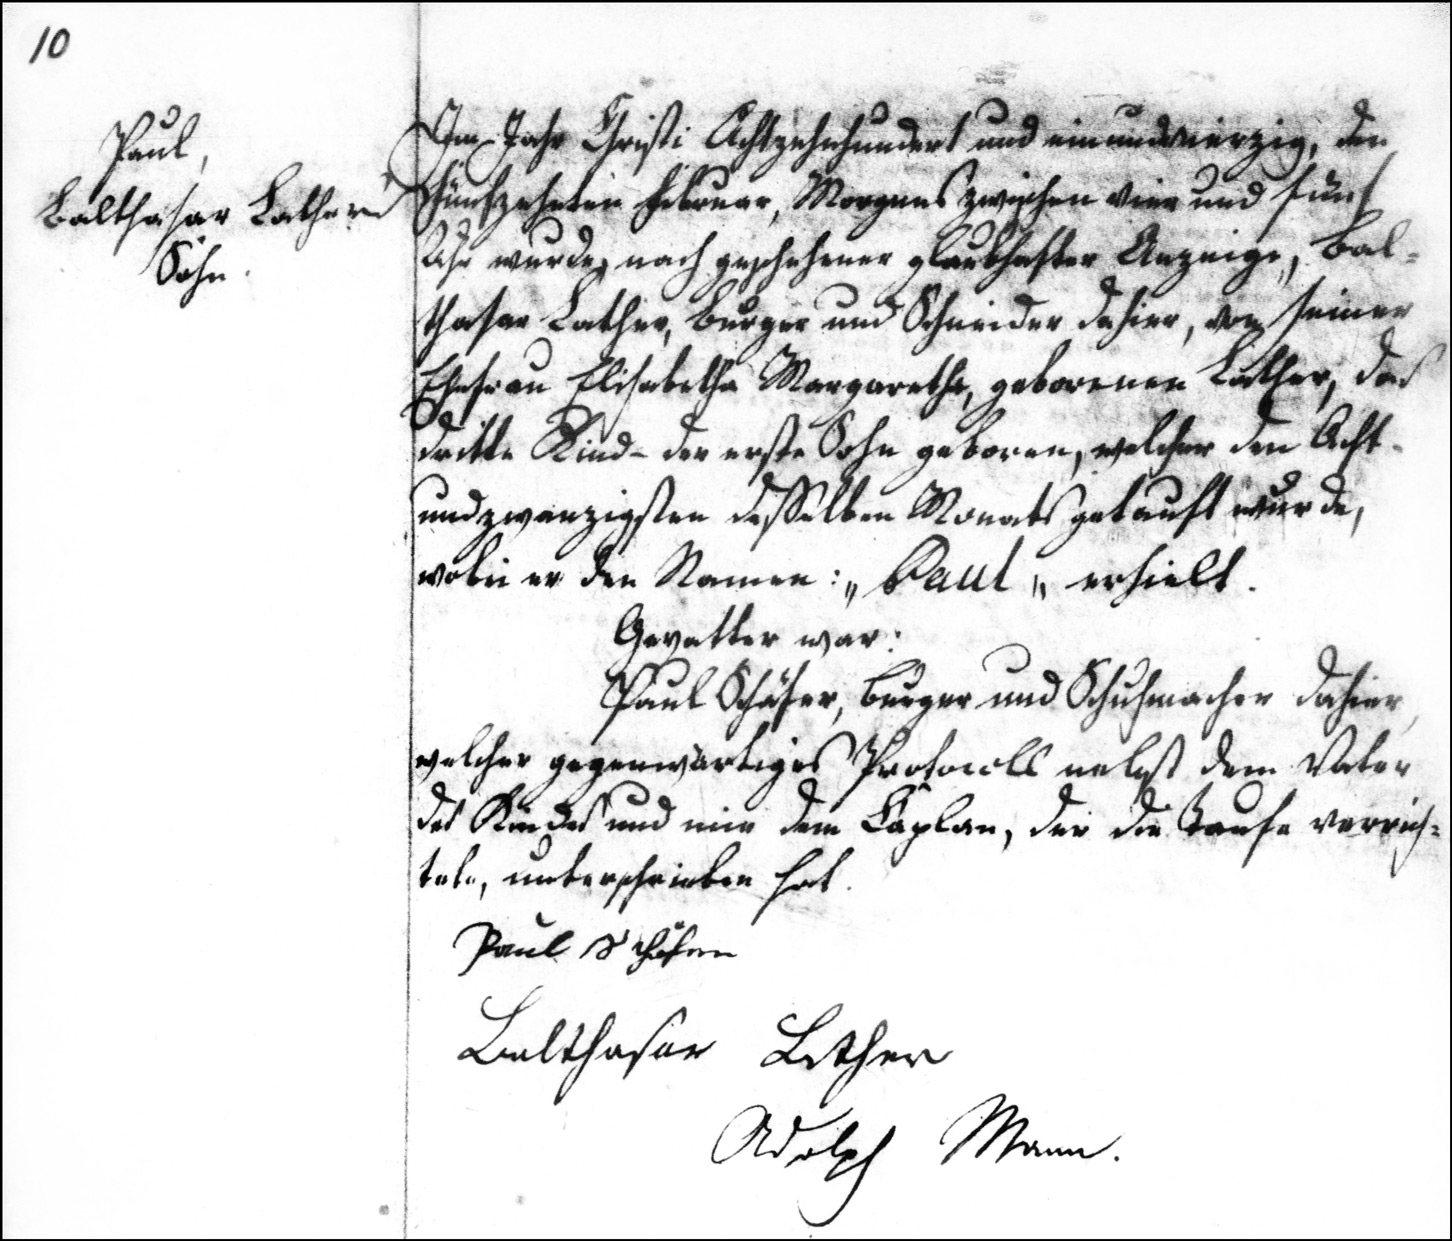 The Birth and Baptismal Record of Paul Lather - 1841